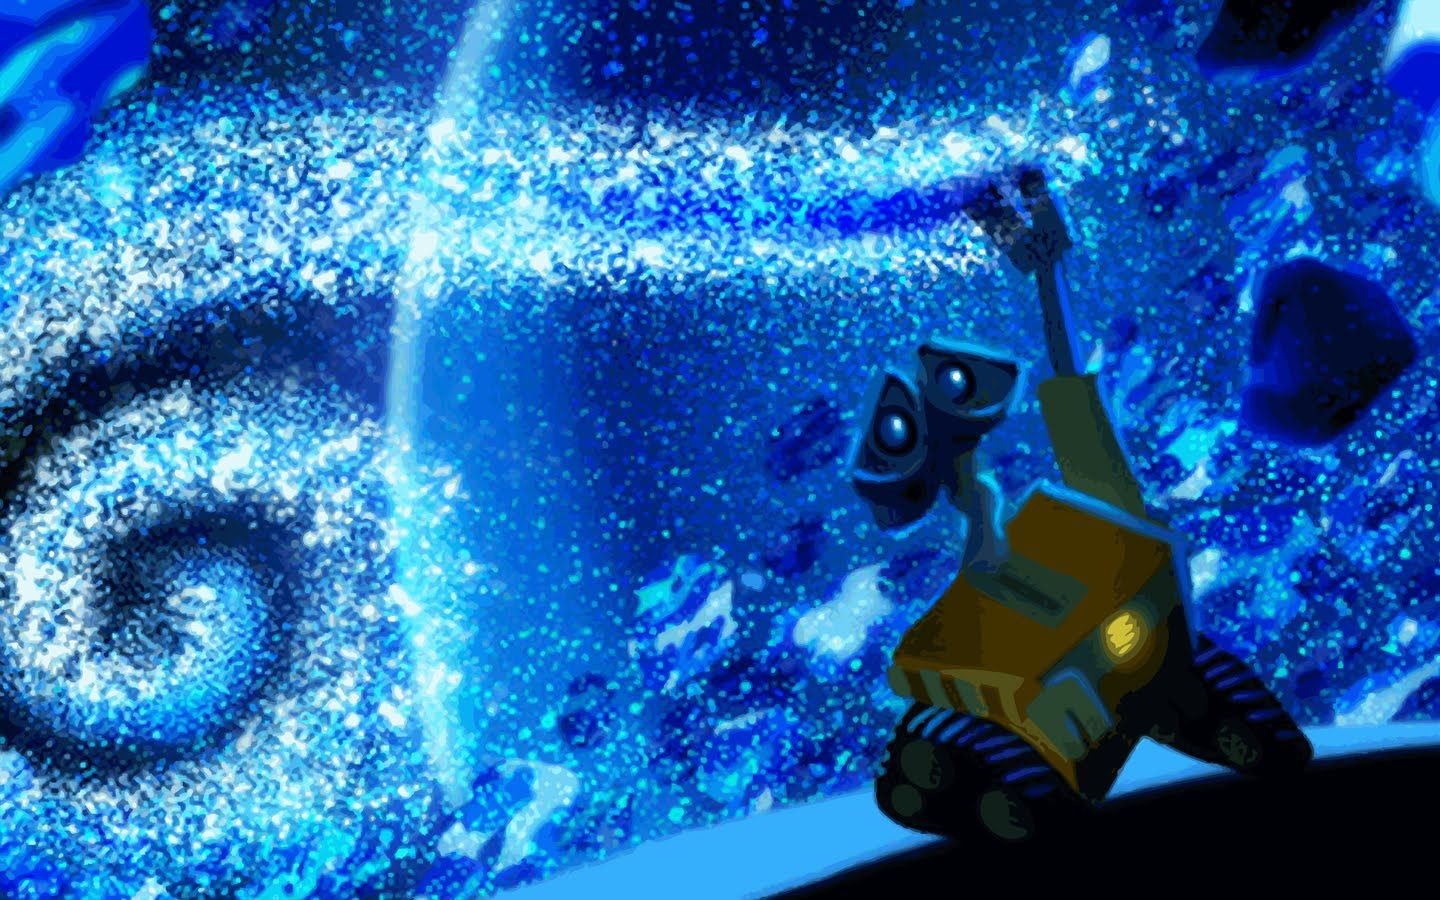 What is the Pop Culture, Sustainability, Consumerism, and Media seen in Wall-E?